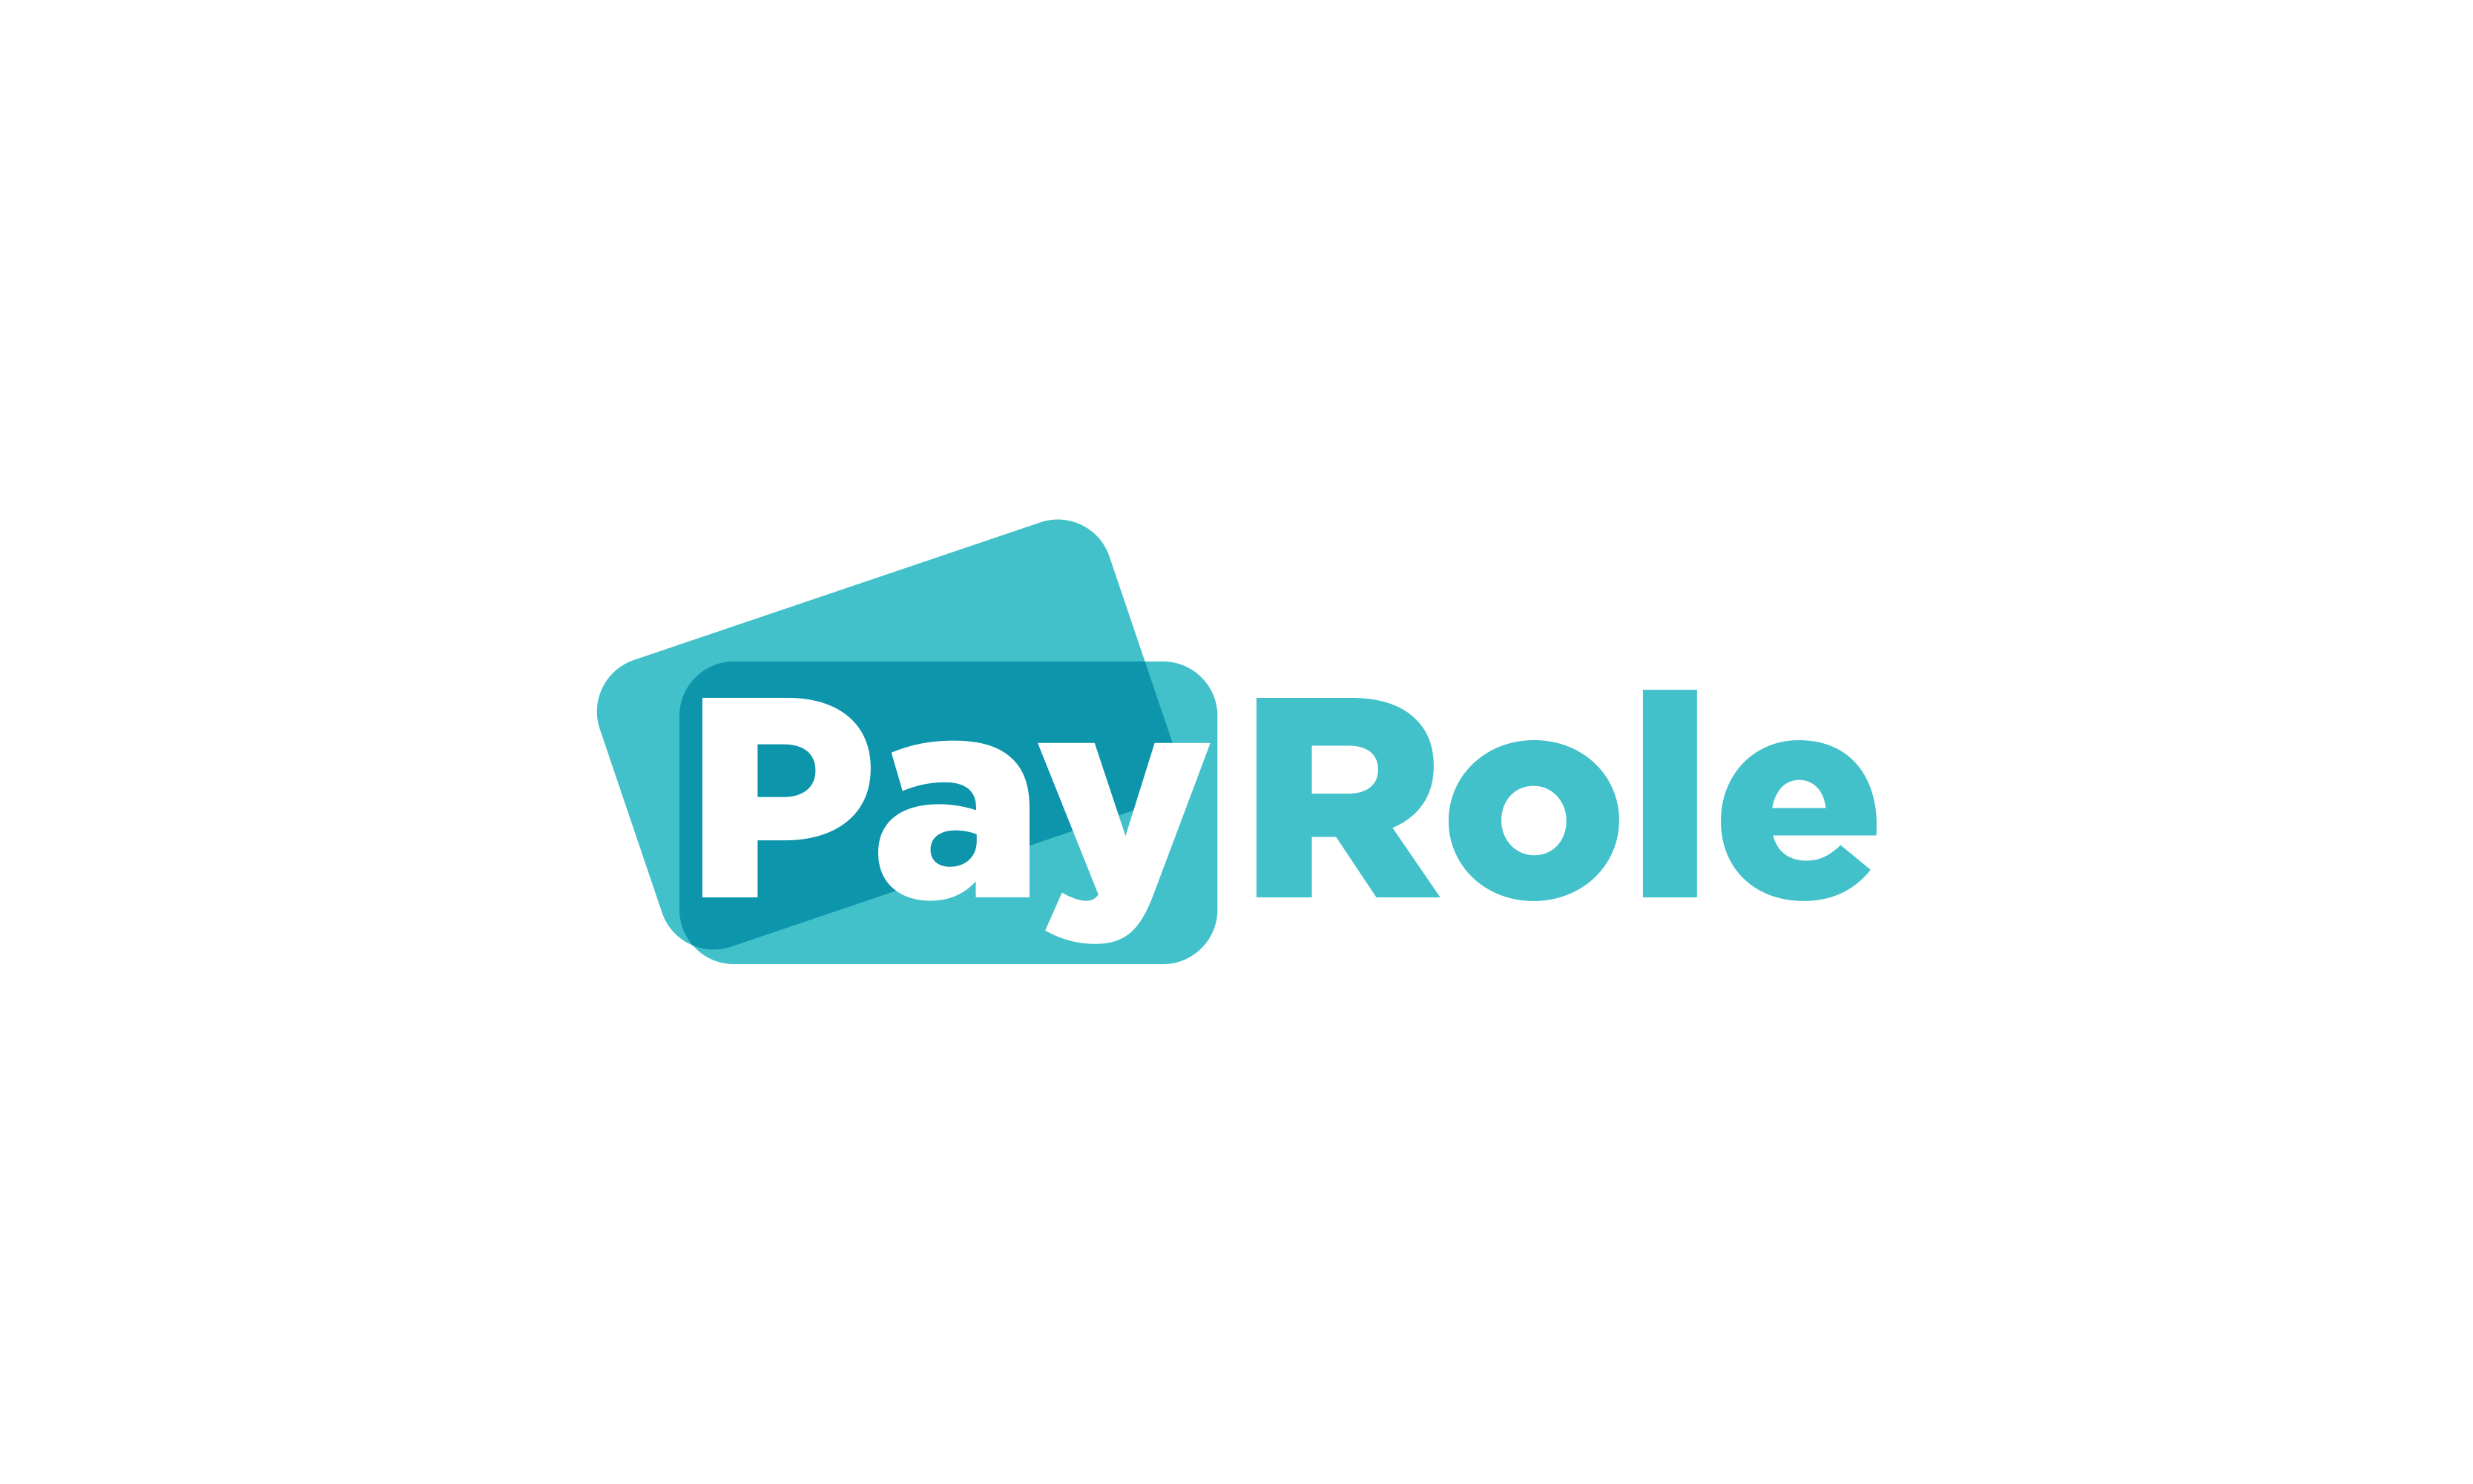 Payrole - Accountancy business name for sale